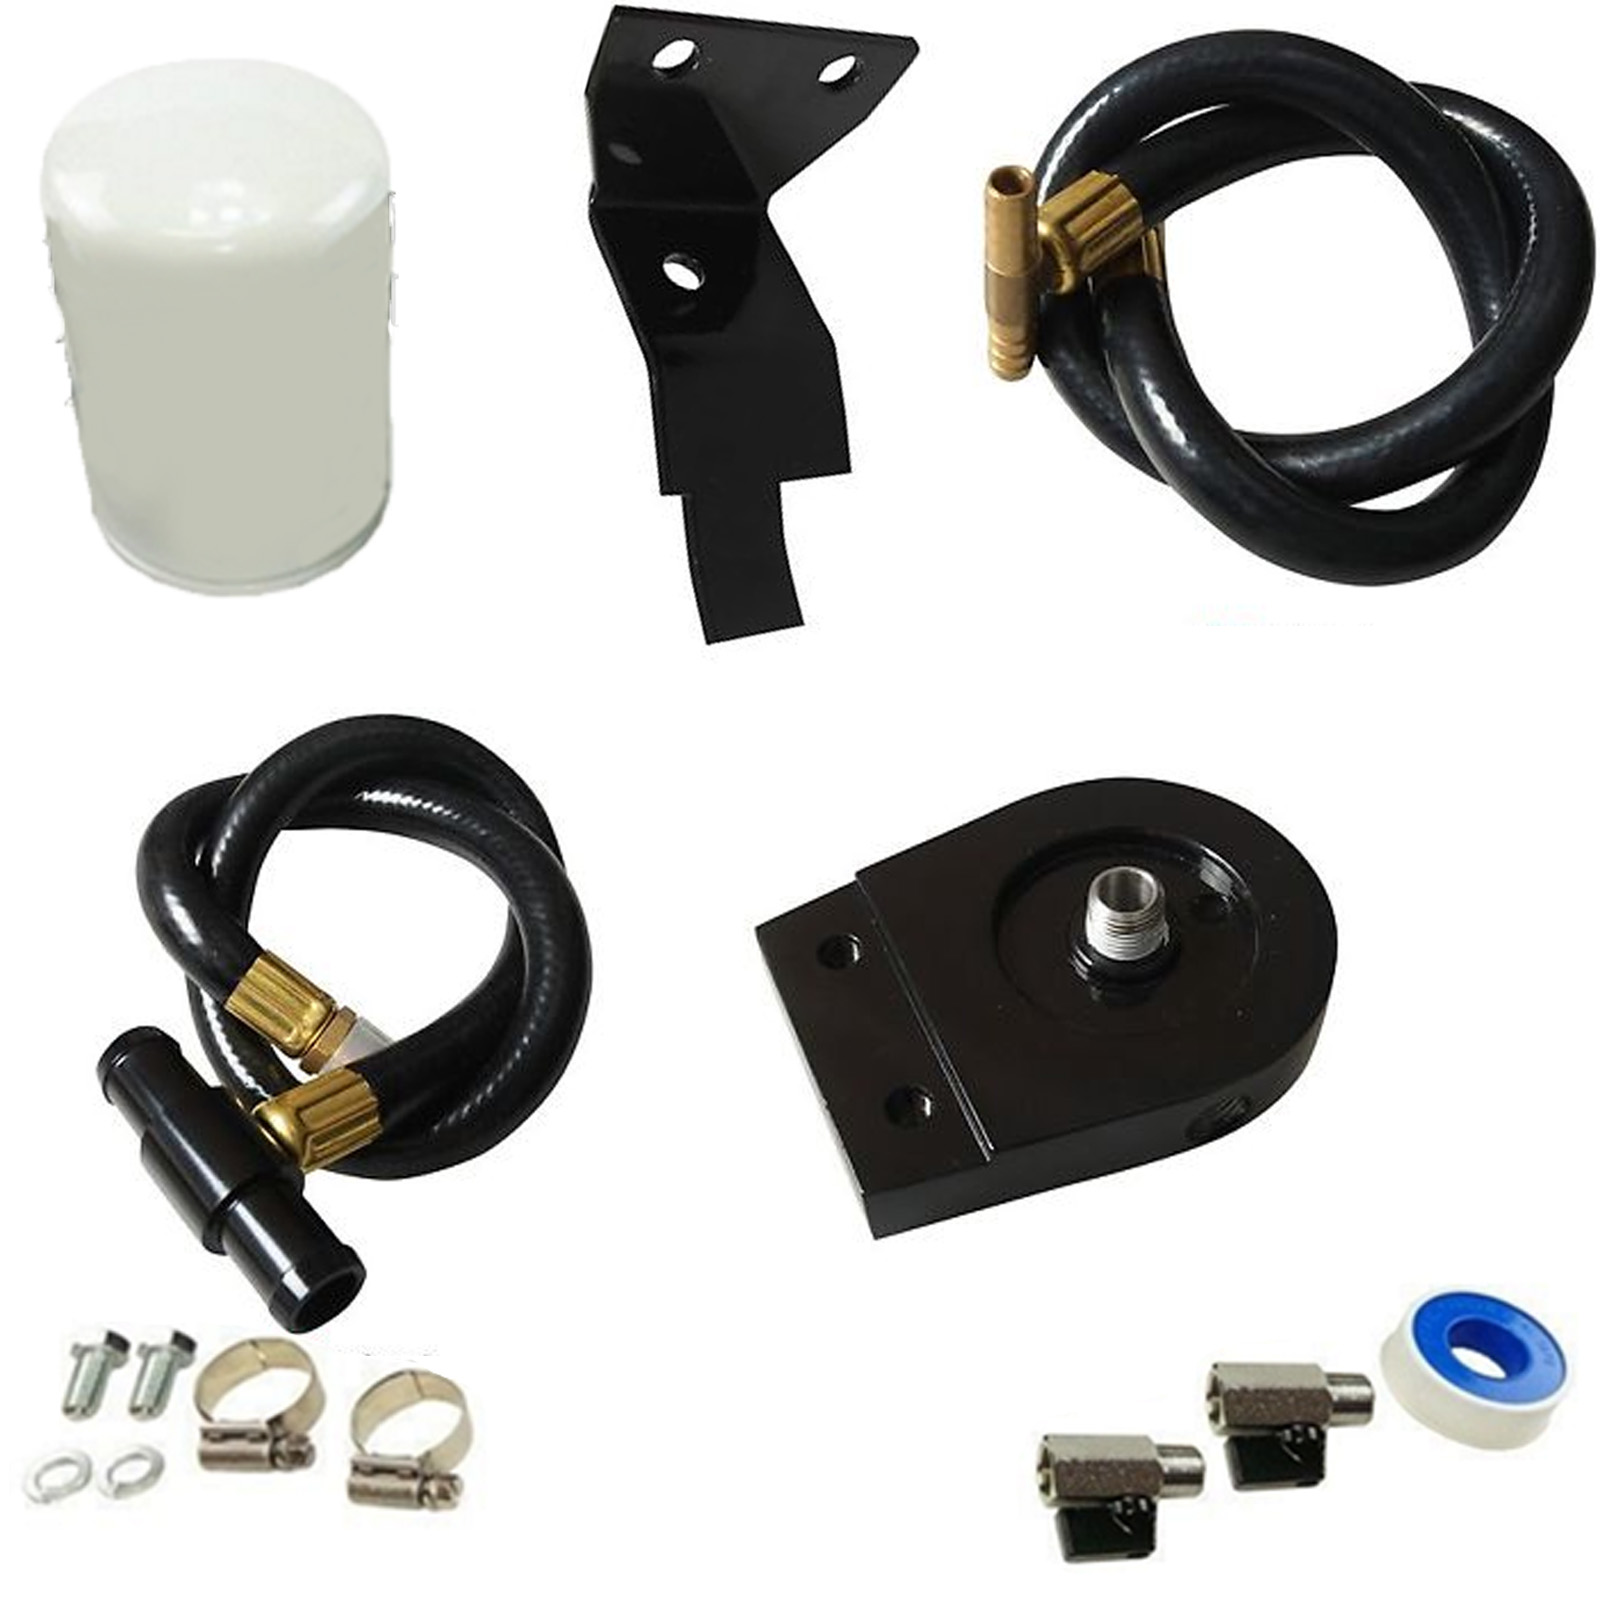 Black Coolant Filtration Kit - DK-FD6.0-CFFK2 - DK Engine Parts